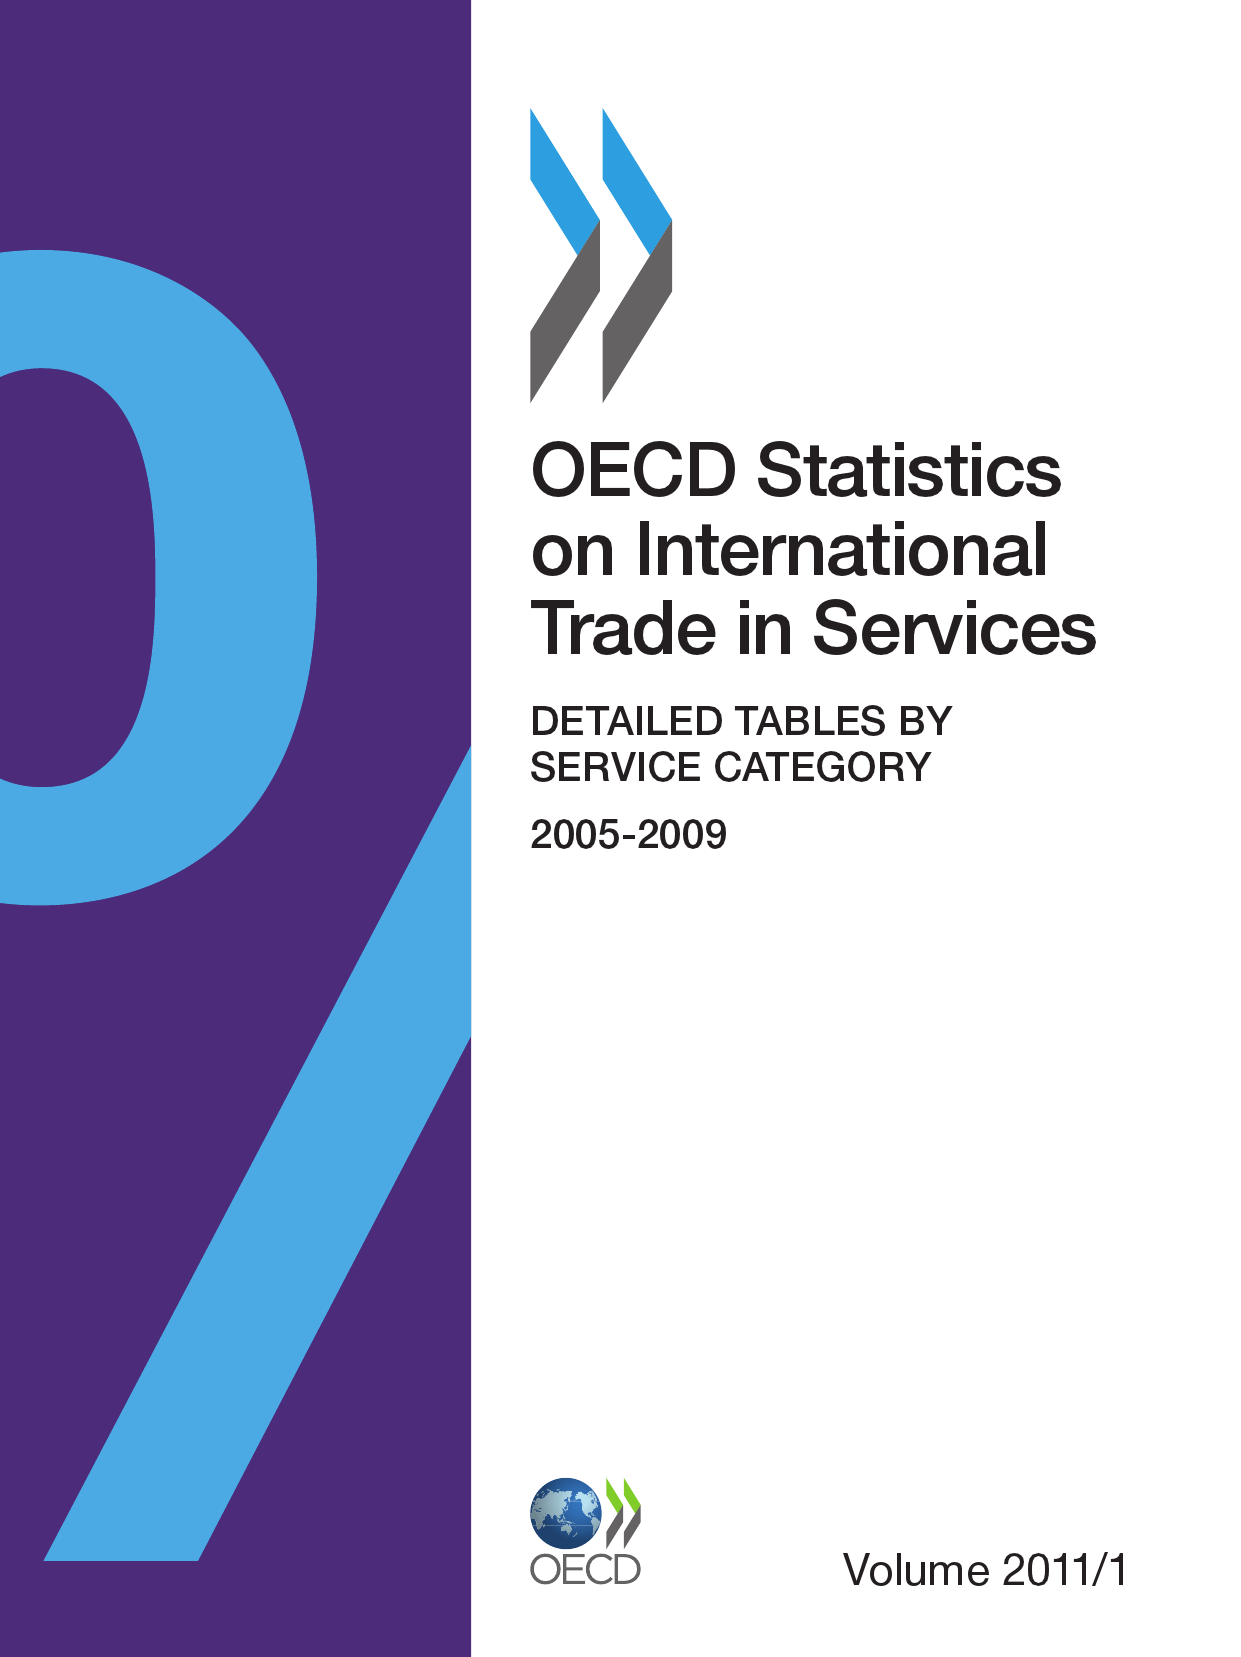 OECD Statistics on International Trade in Services, Volume 2011 Issue 1